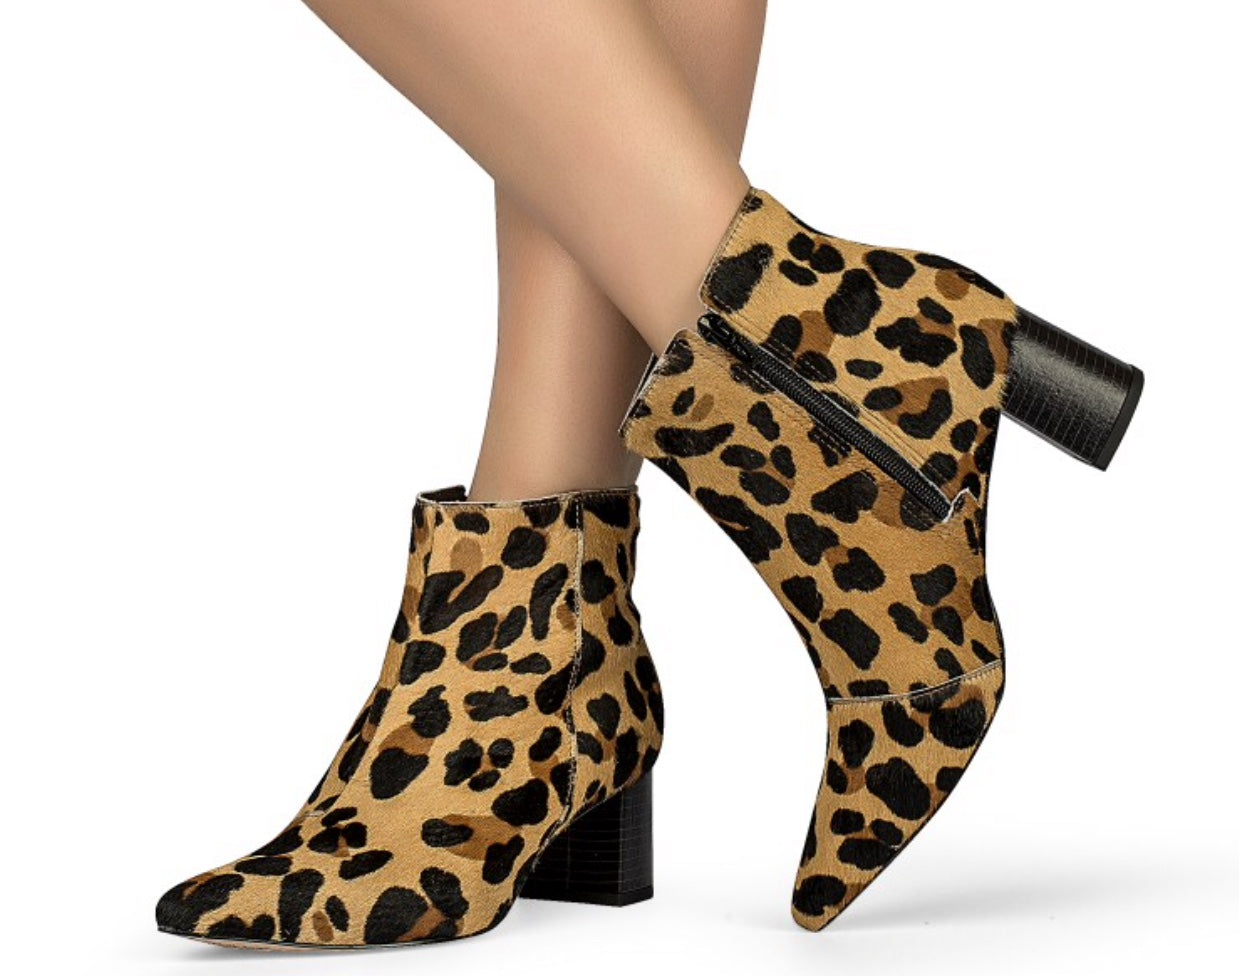 Cheetah Print Low Ankle Bootie | Women's Boot